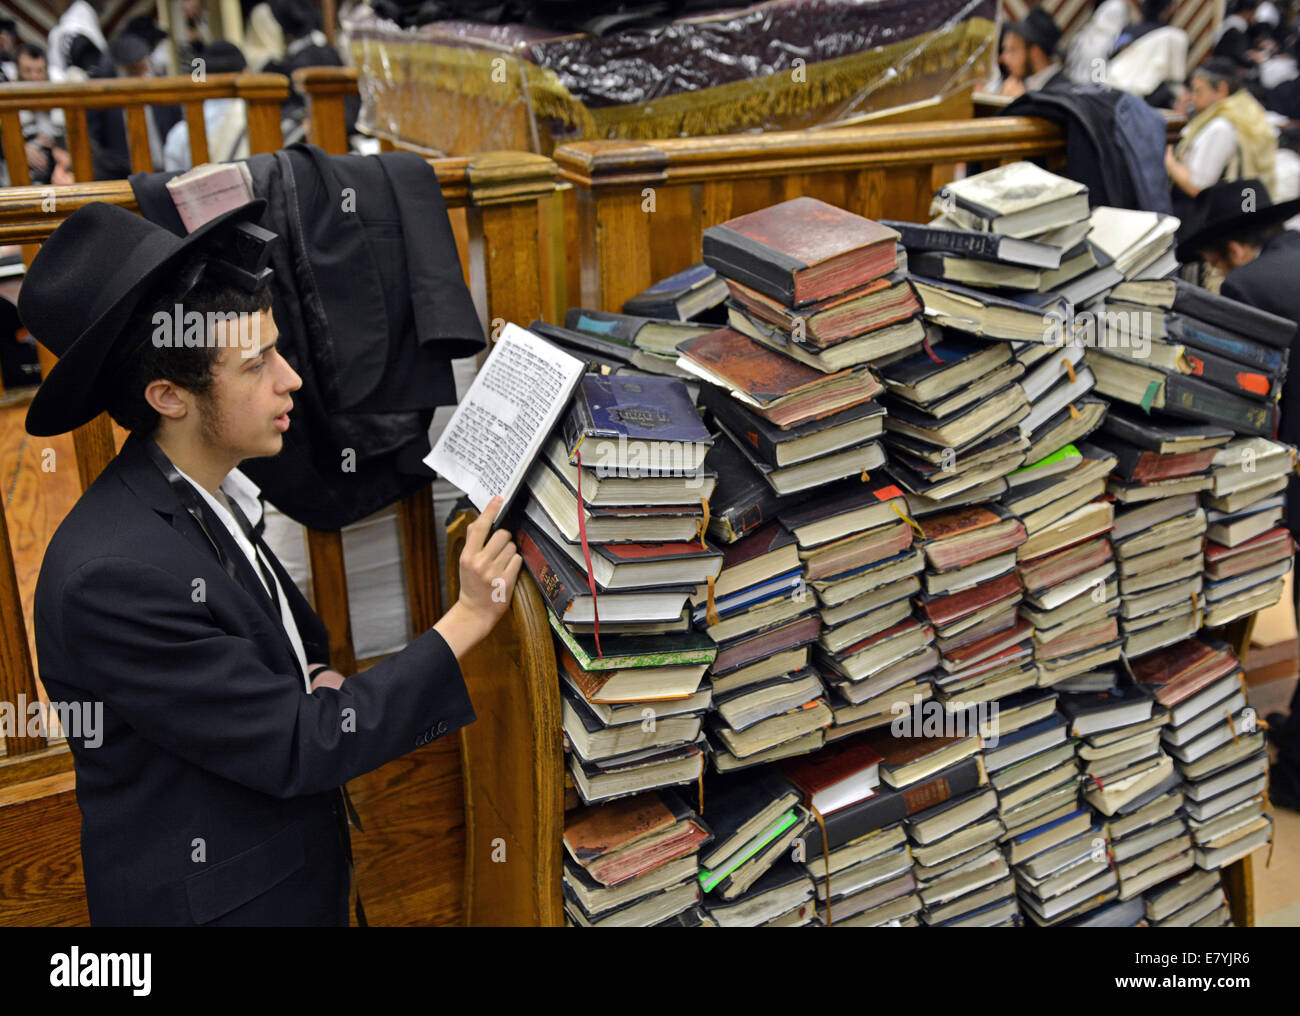 At a synagogue in the Crown Heights section of Brooklyn, New York, a